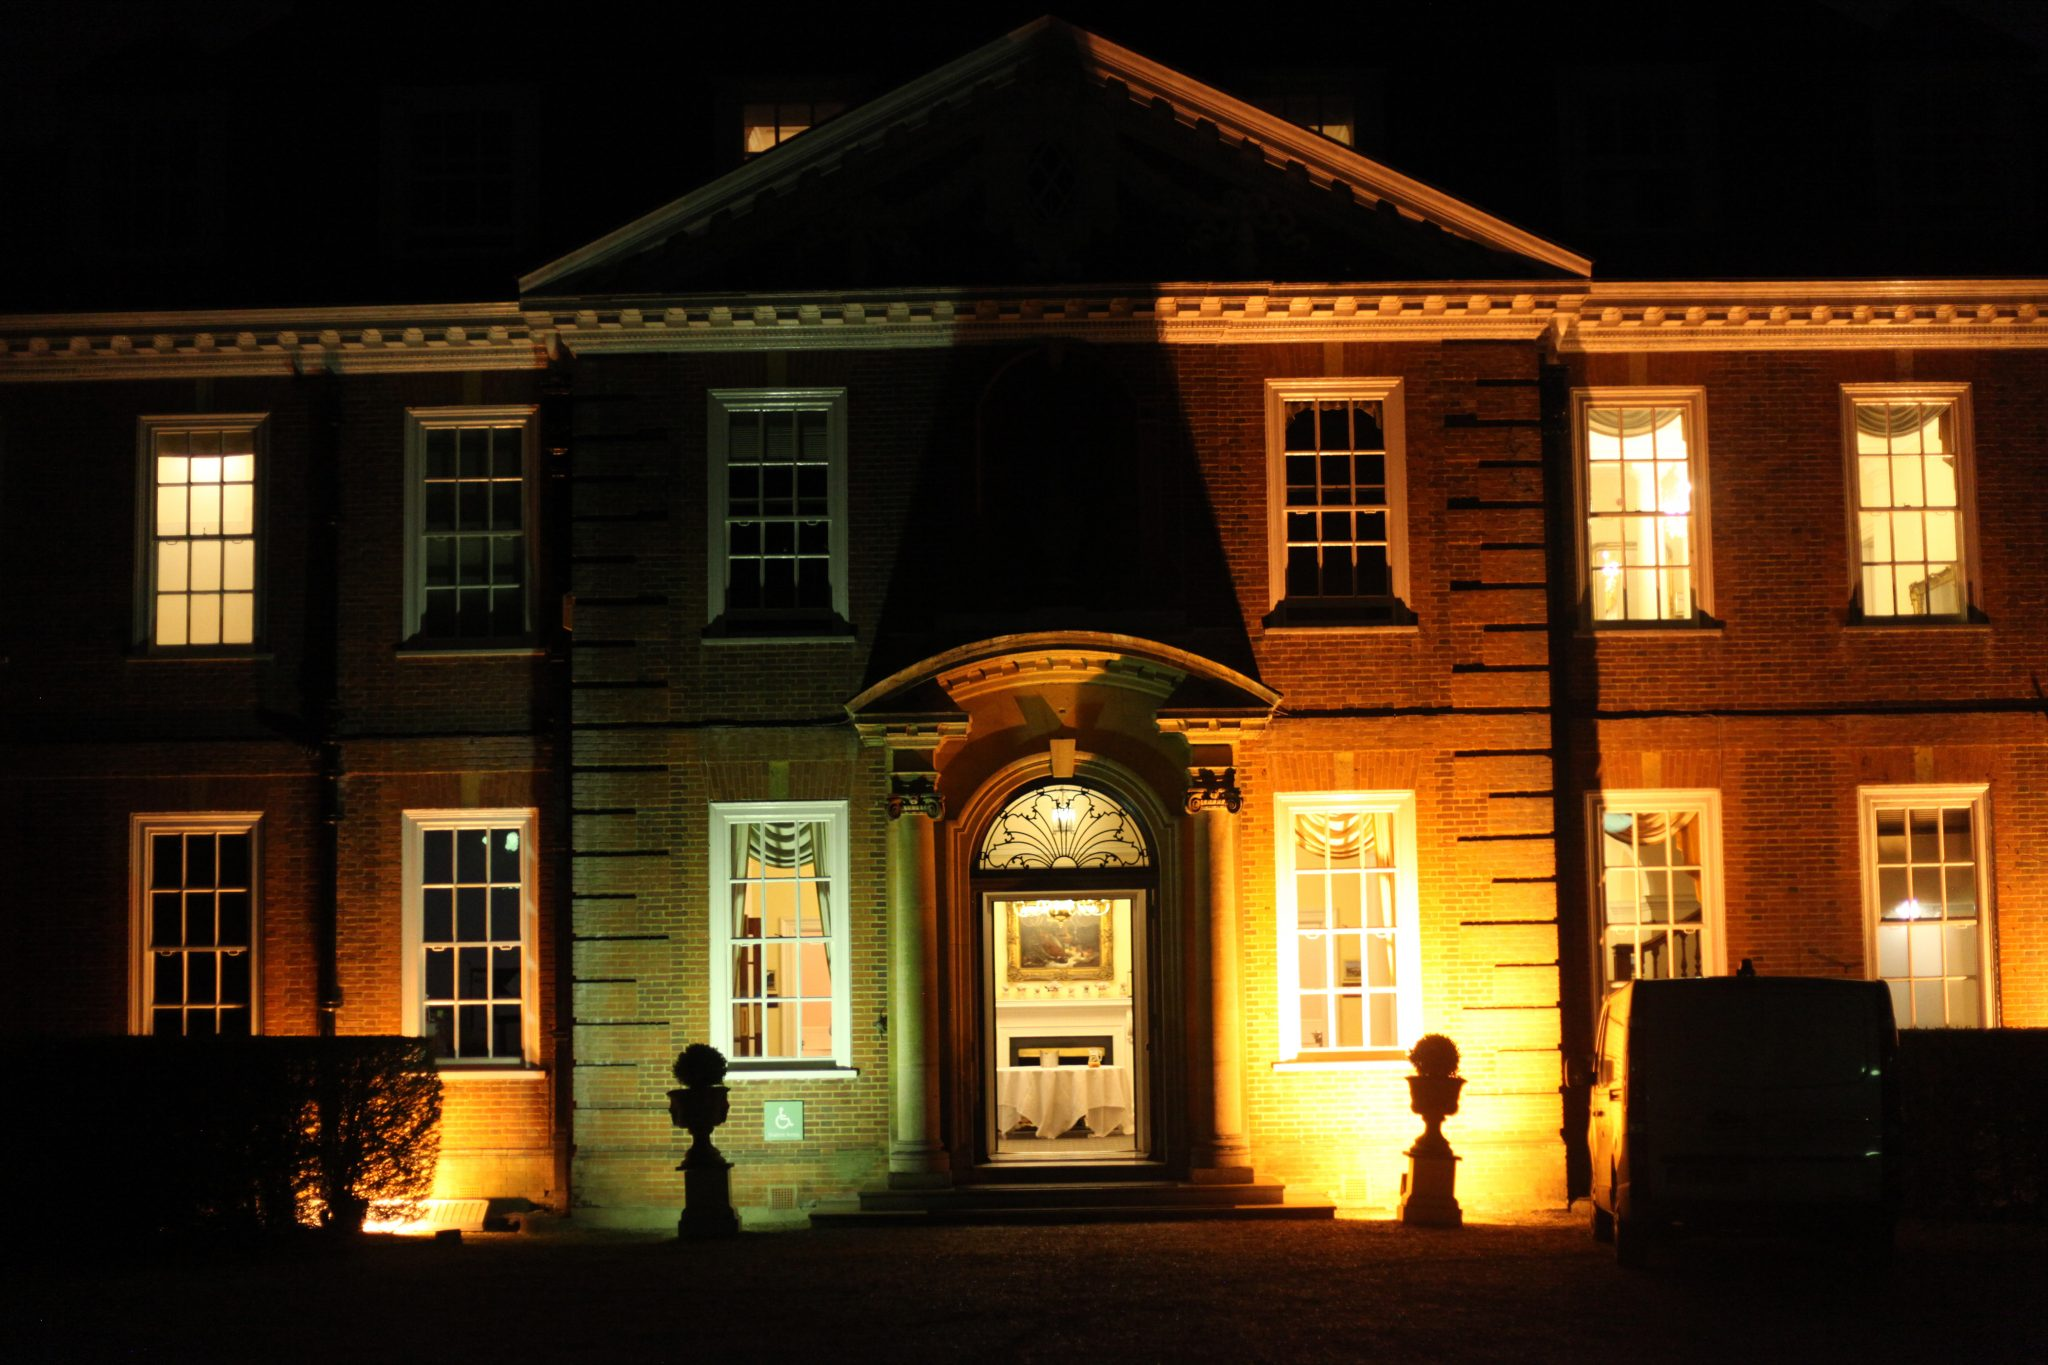 Hunton Park at night